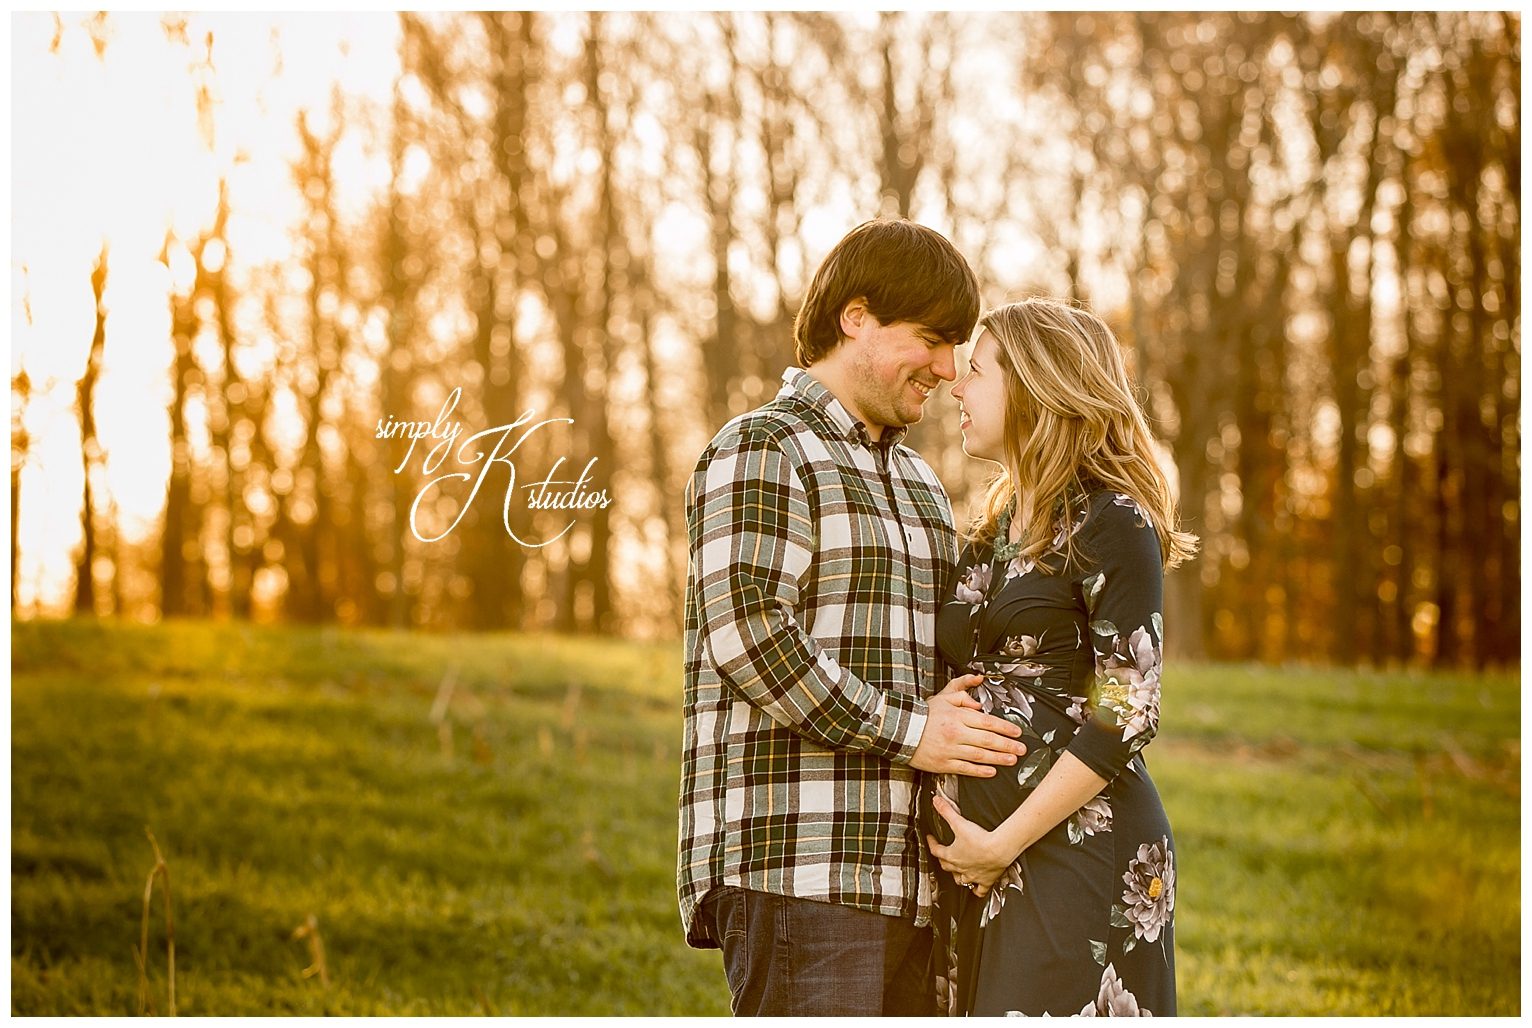 Maternity Session Photographers near Marlborough CT.jpg